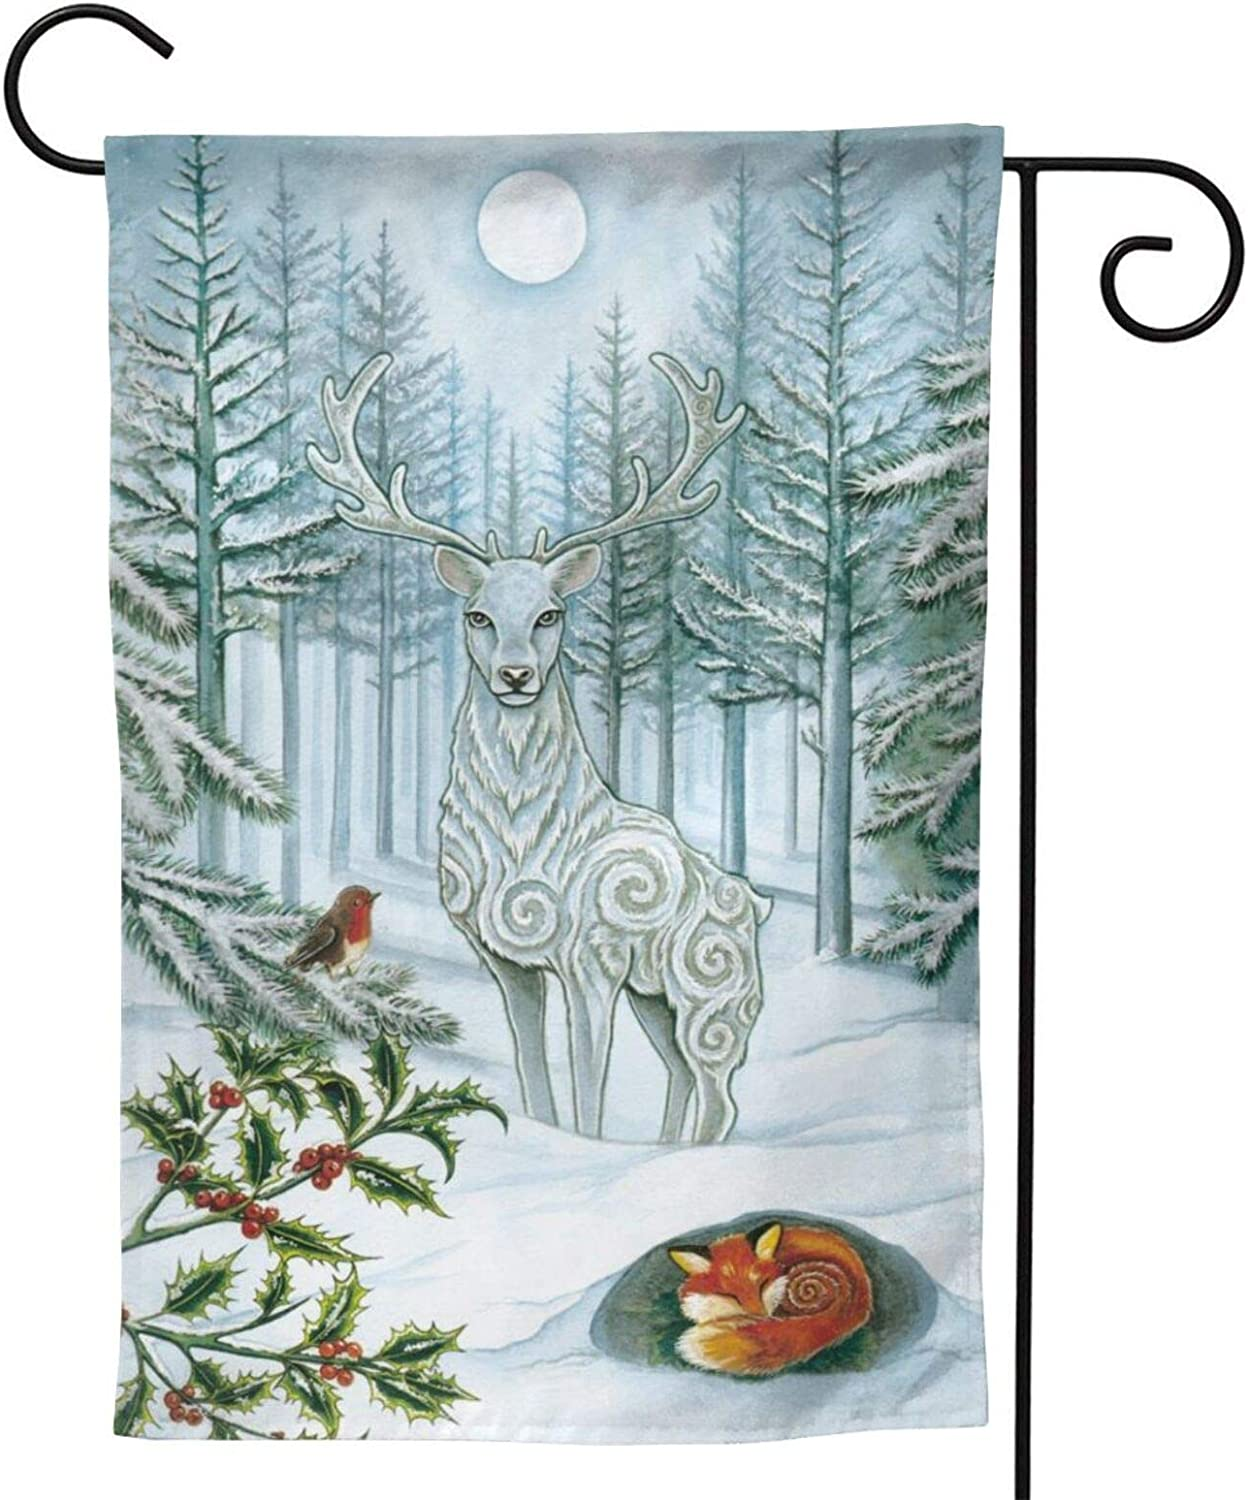 MINIOZE Yule Tree Pagan Christmas Deer Party Themed Flag Welcome Outdoor Outside Decorations Ornament Picks Garden Yard Decor Double Sided 12.5X 18 Flag